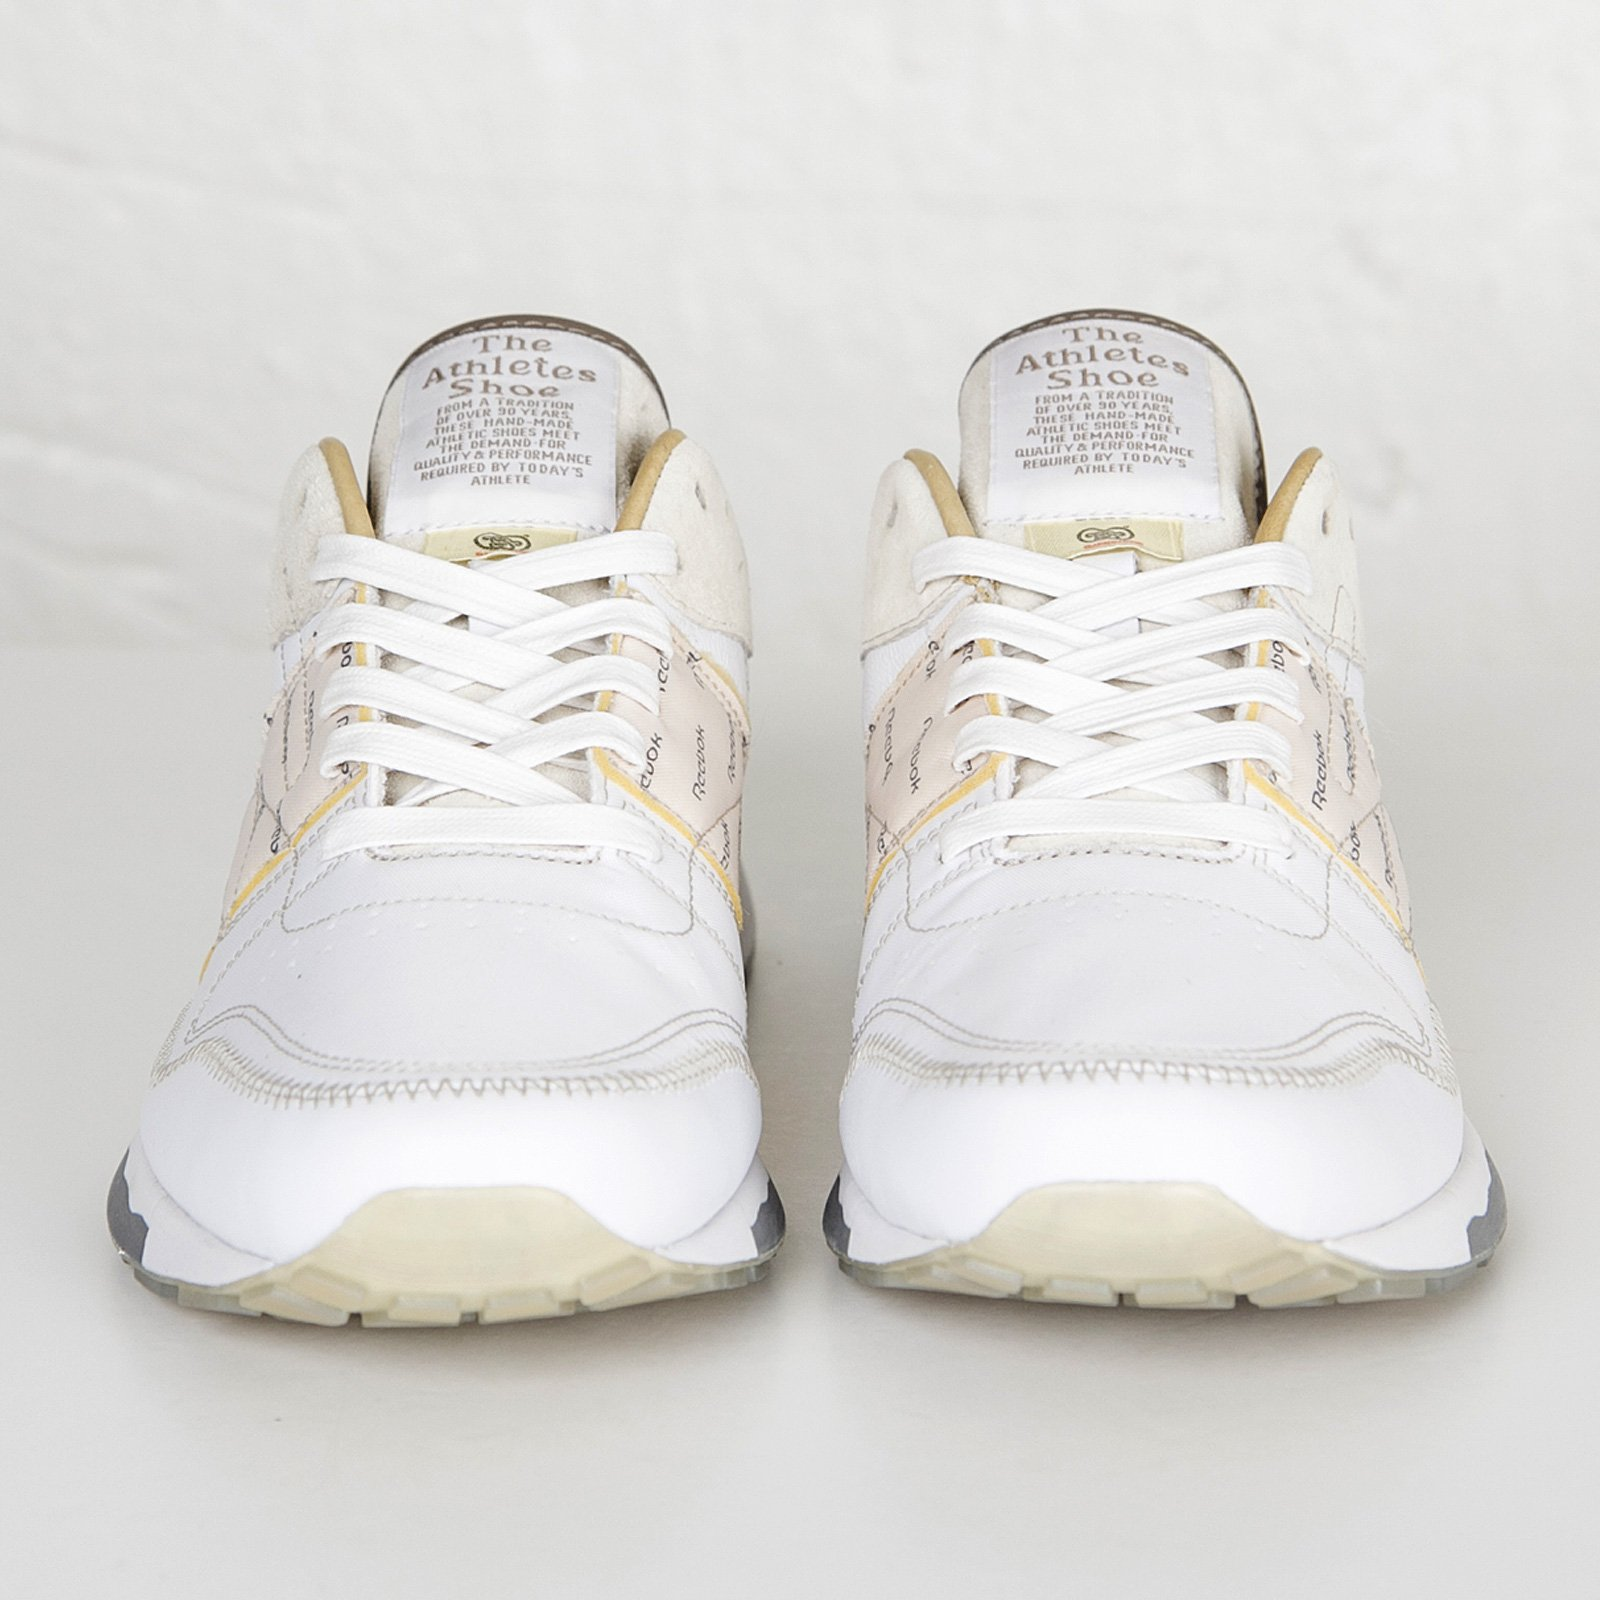 41d2734657f Reebok GS Classic Leather 6000 Reebok GS Classic Leather 6000 ...